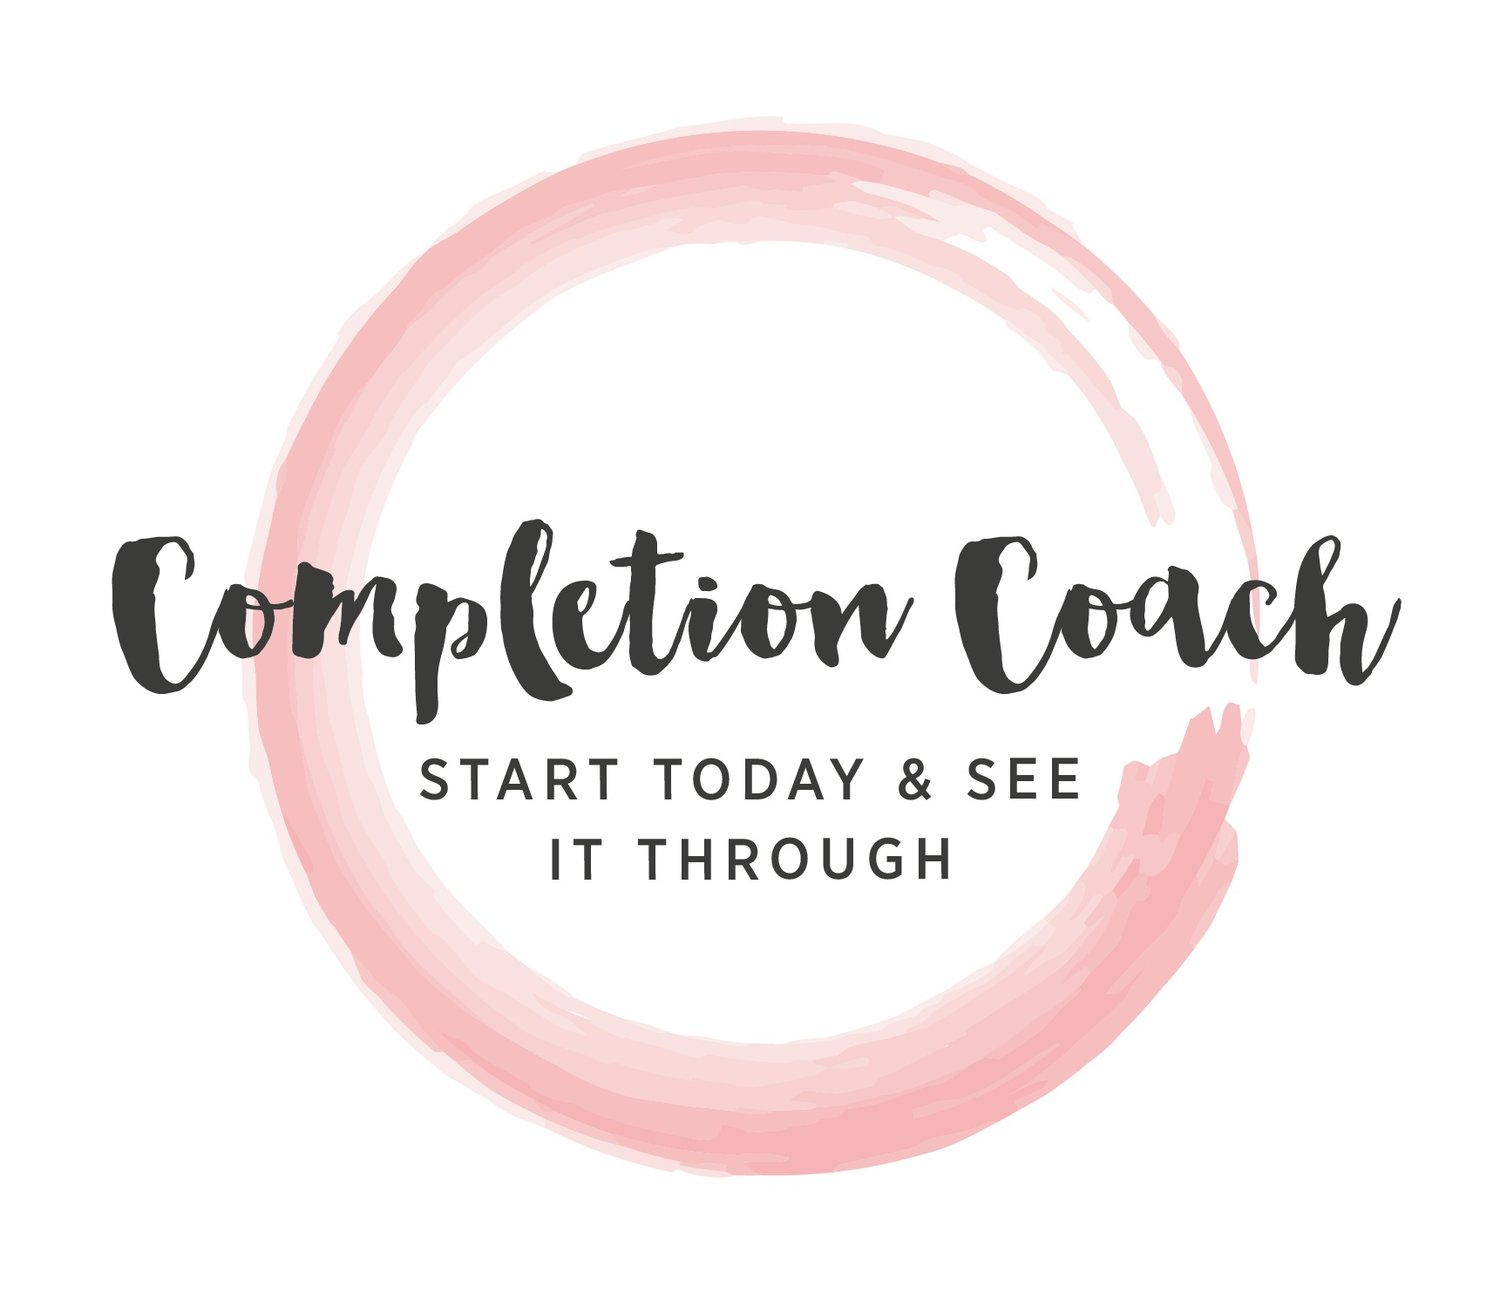 The Completion Coach